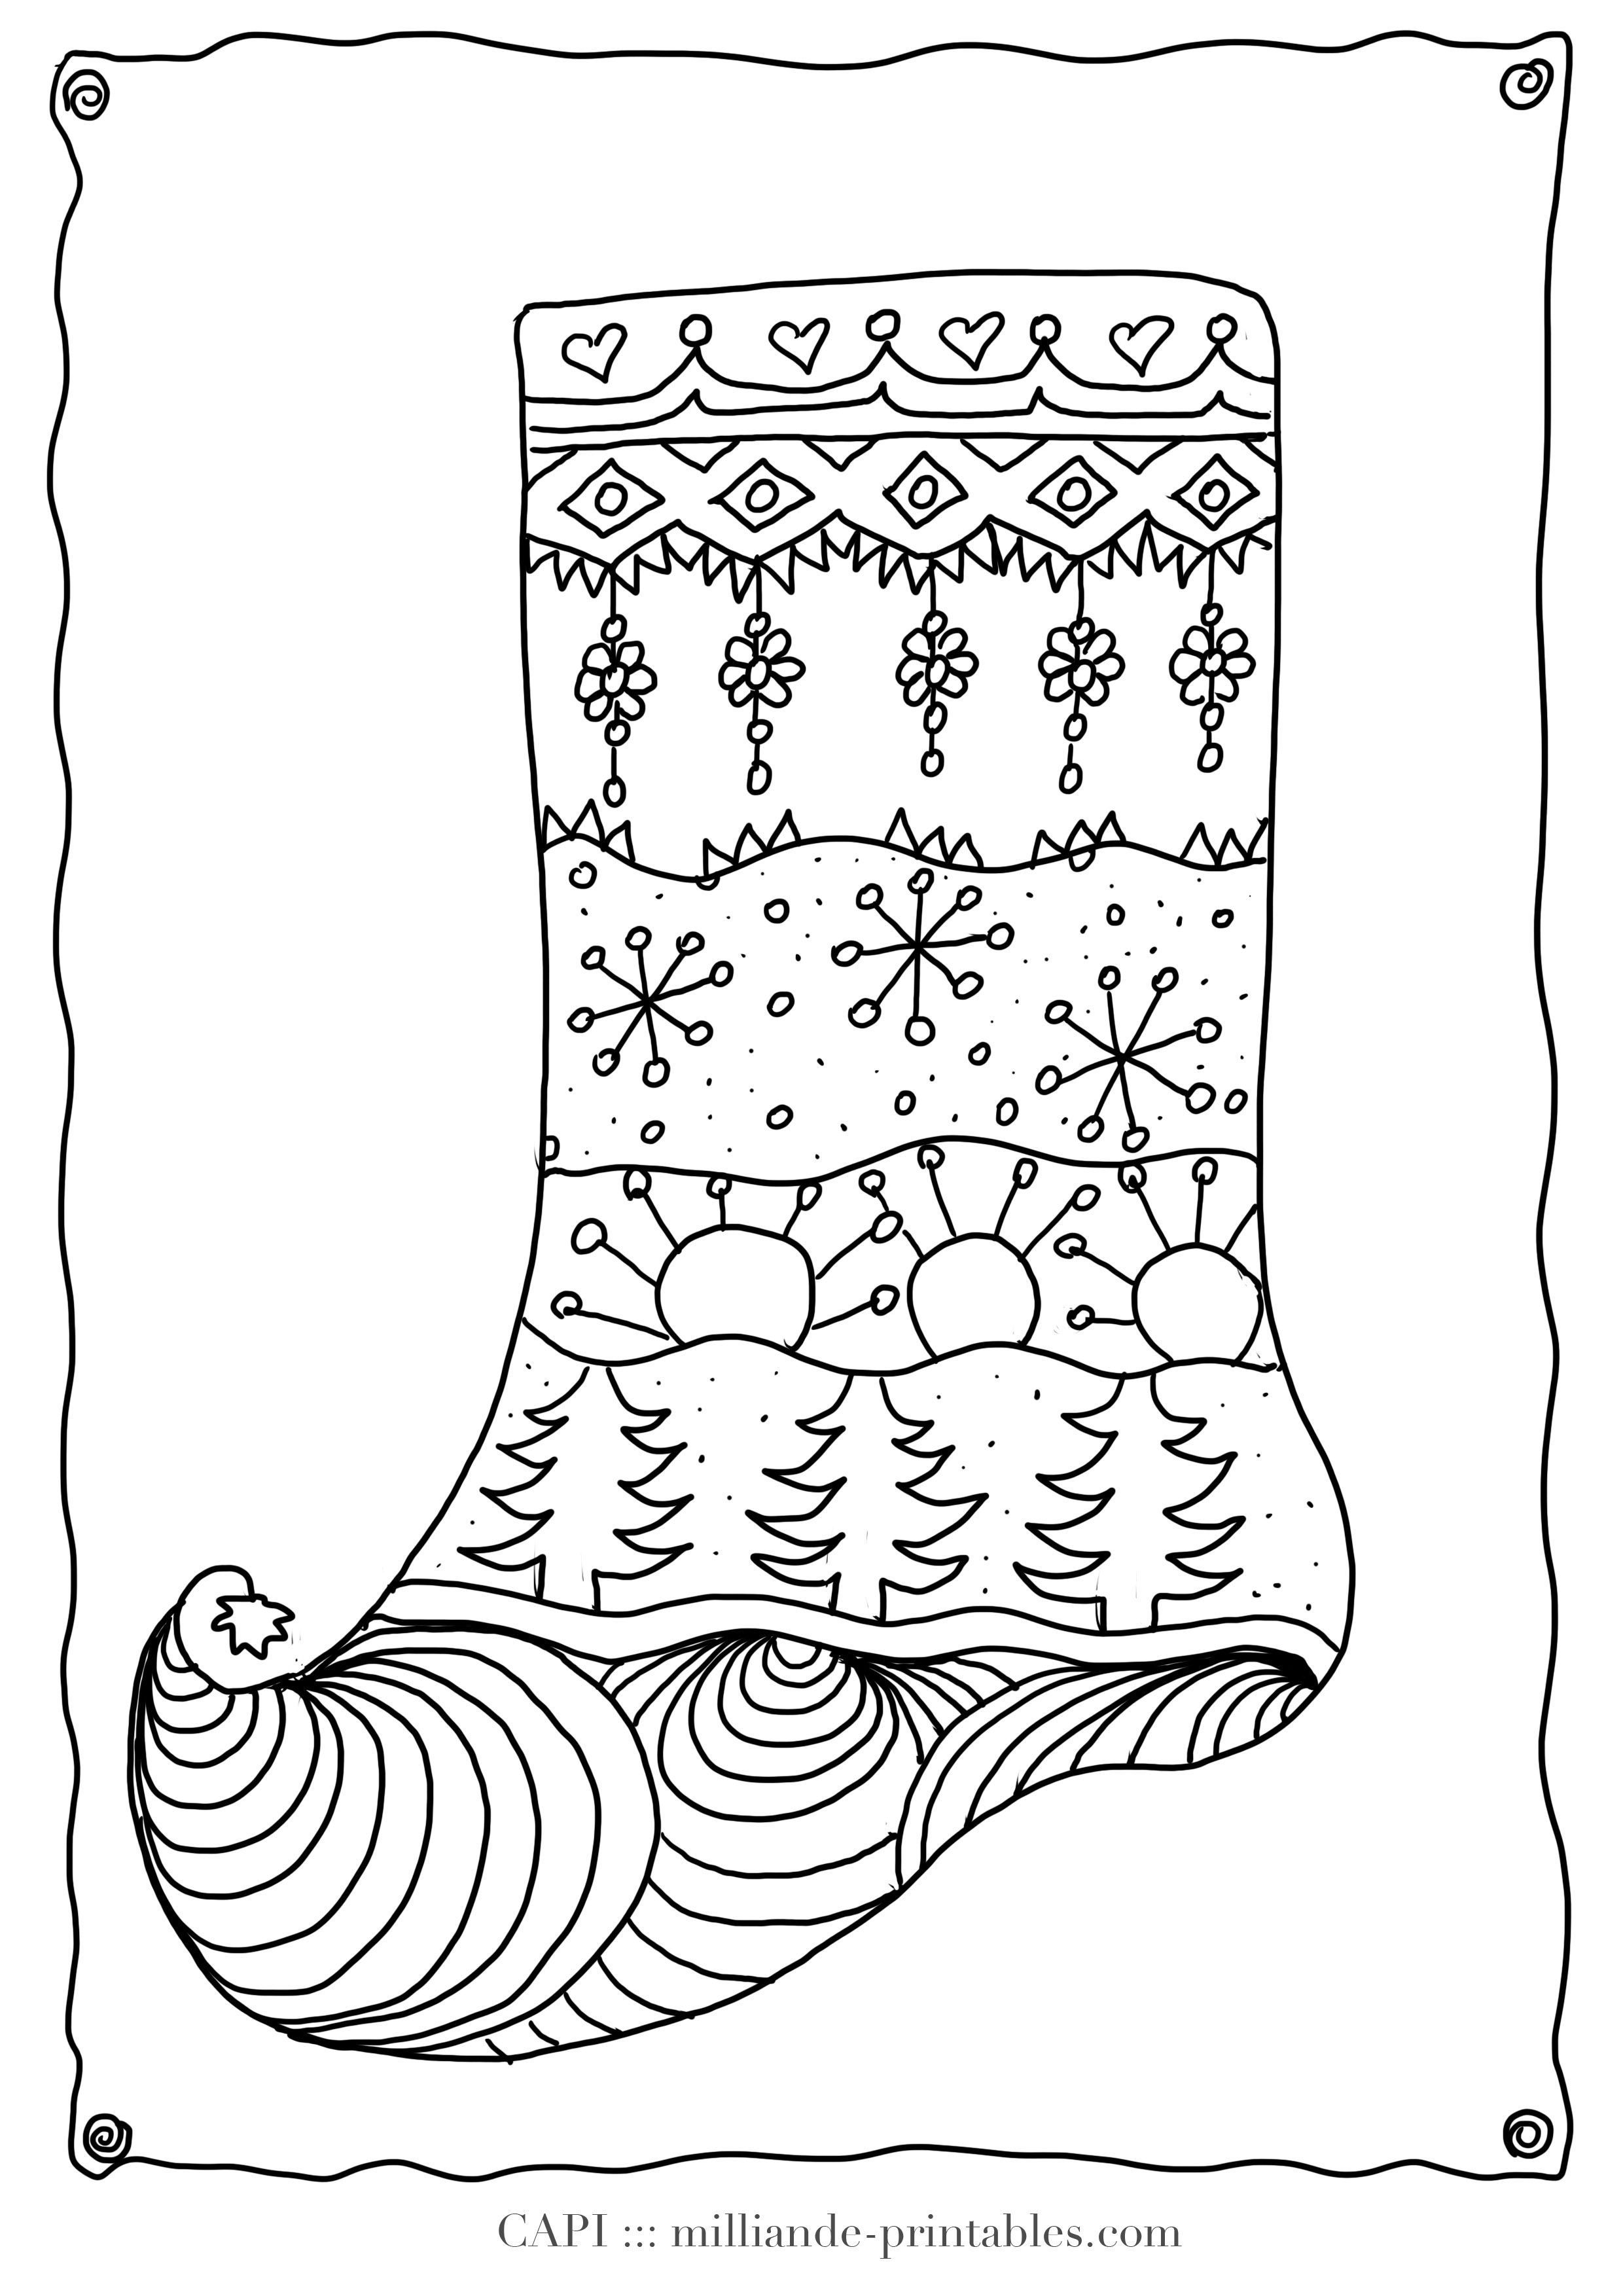 Christmas Coloring Stockings Template With Stocking Pages Google Search Pinterest